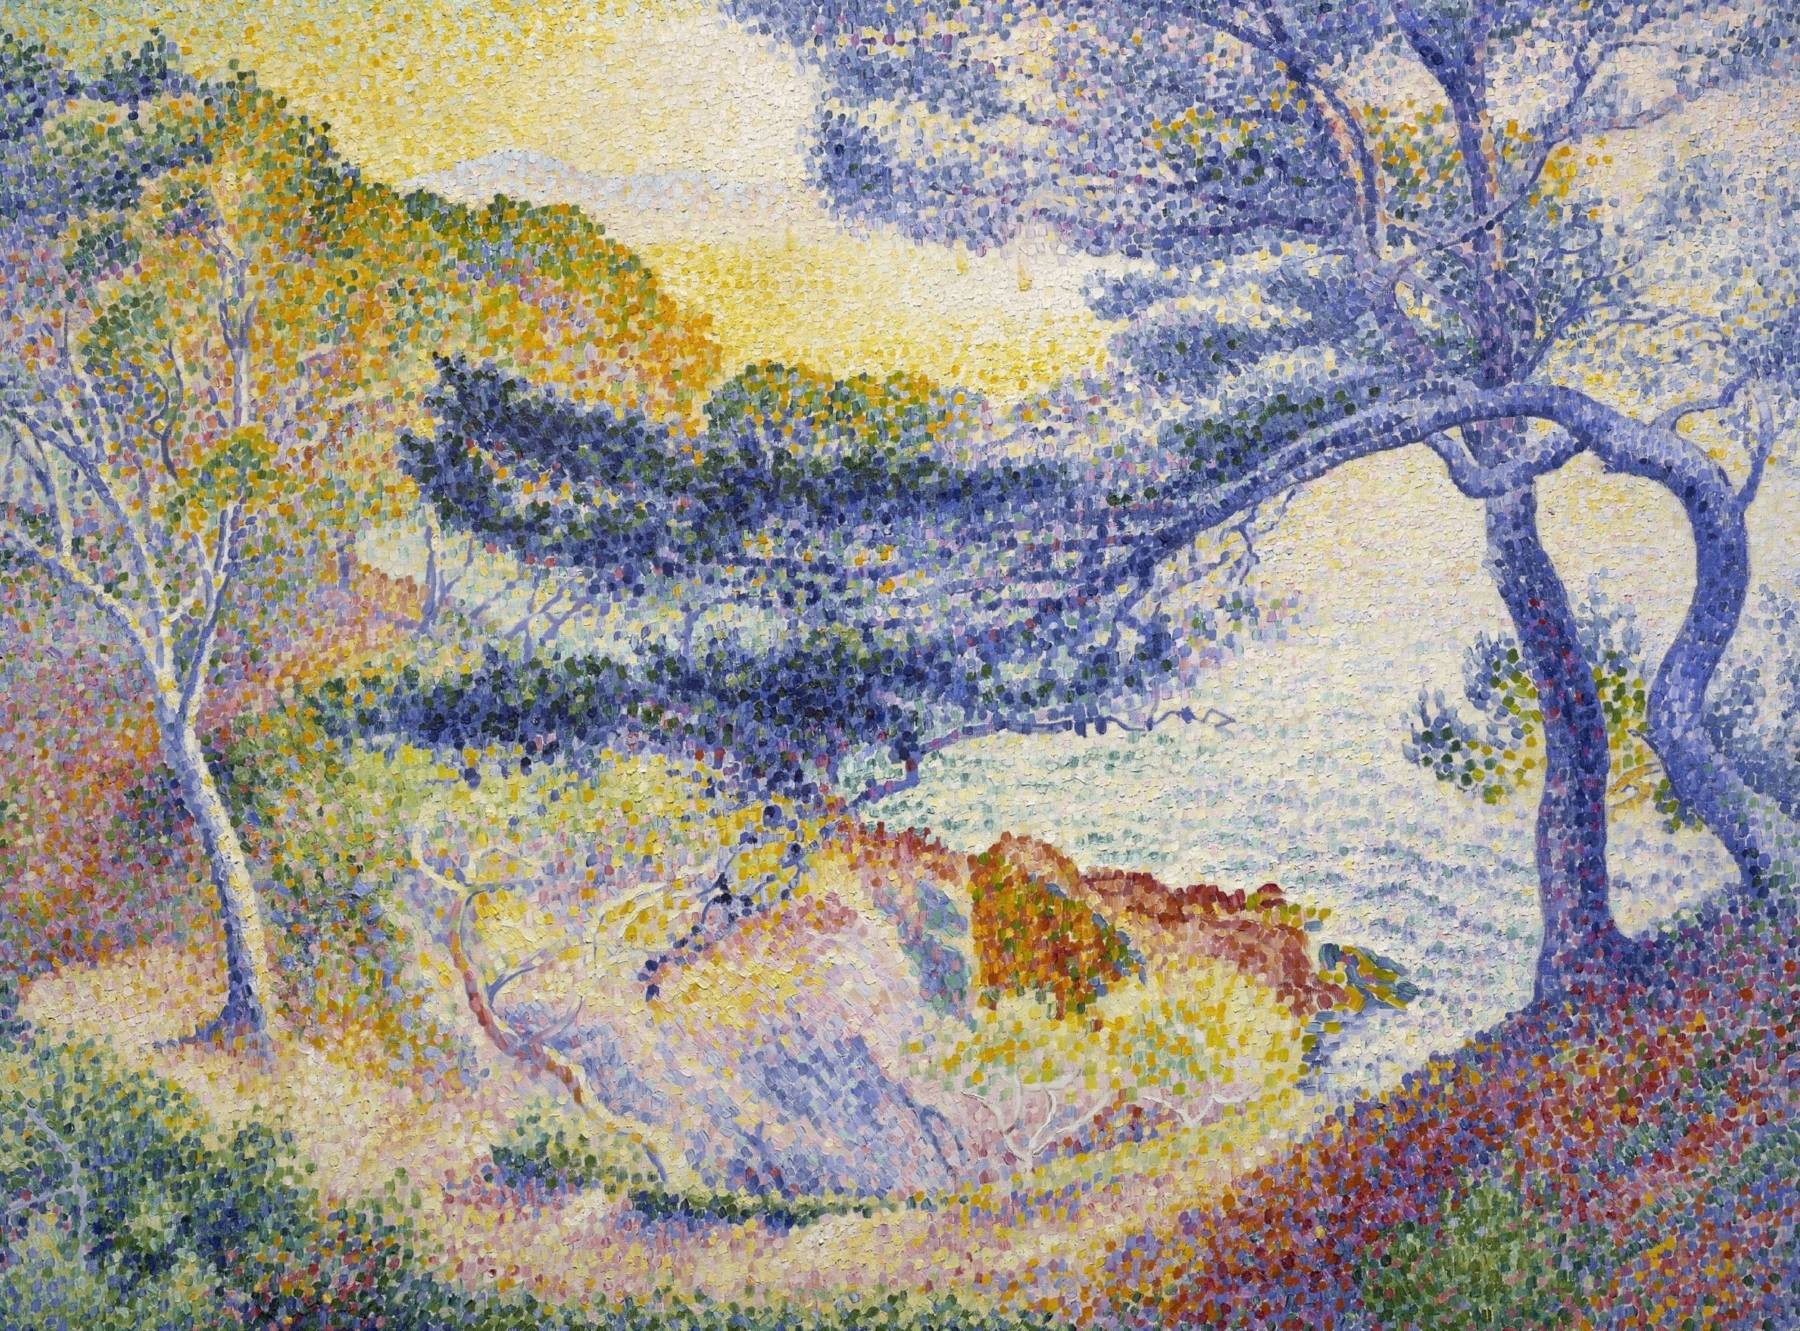 Henri-Edmond Cross, Le Cap Layet